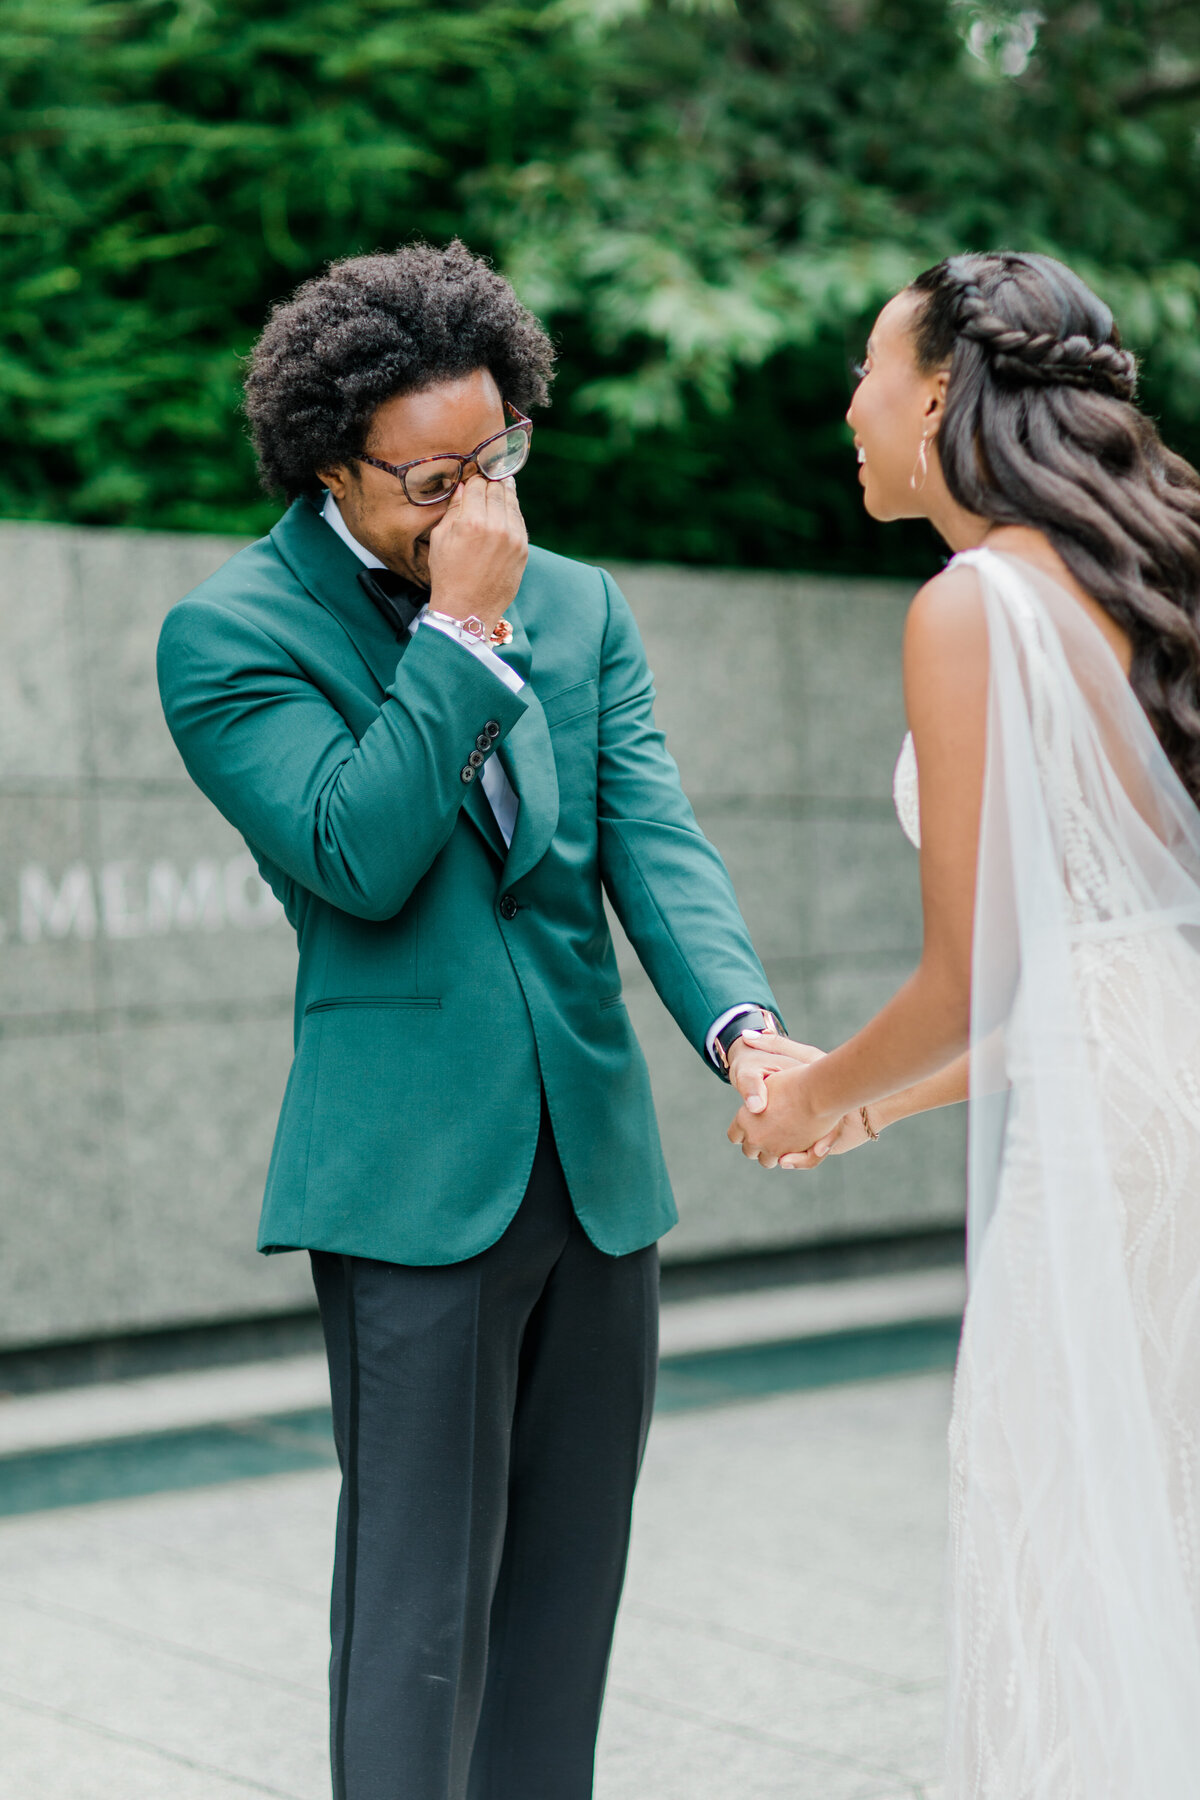 Solomon_Tkeyah_Micro_COVID_Wedding_Washington_DC_War_Memorial_MLK_Memorial_Linoln_Memorial_Angelika_Johns_Photography-3724